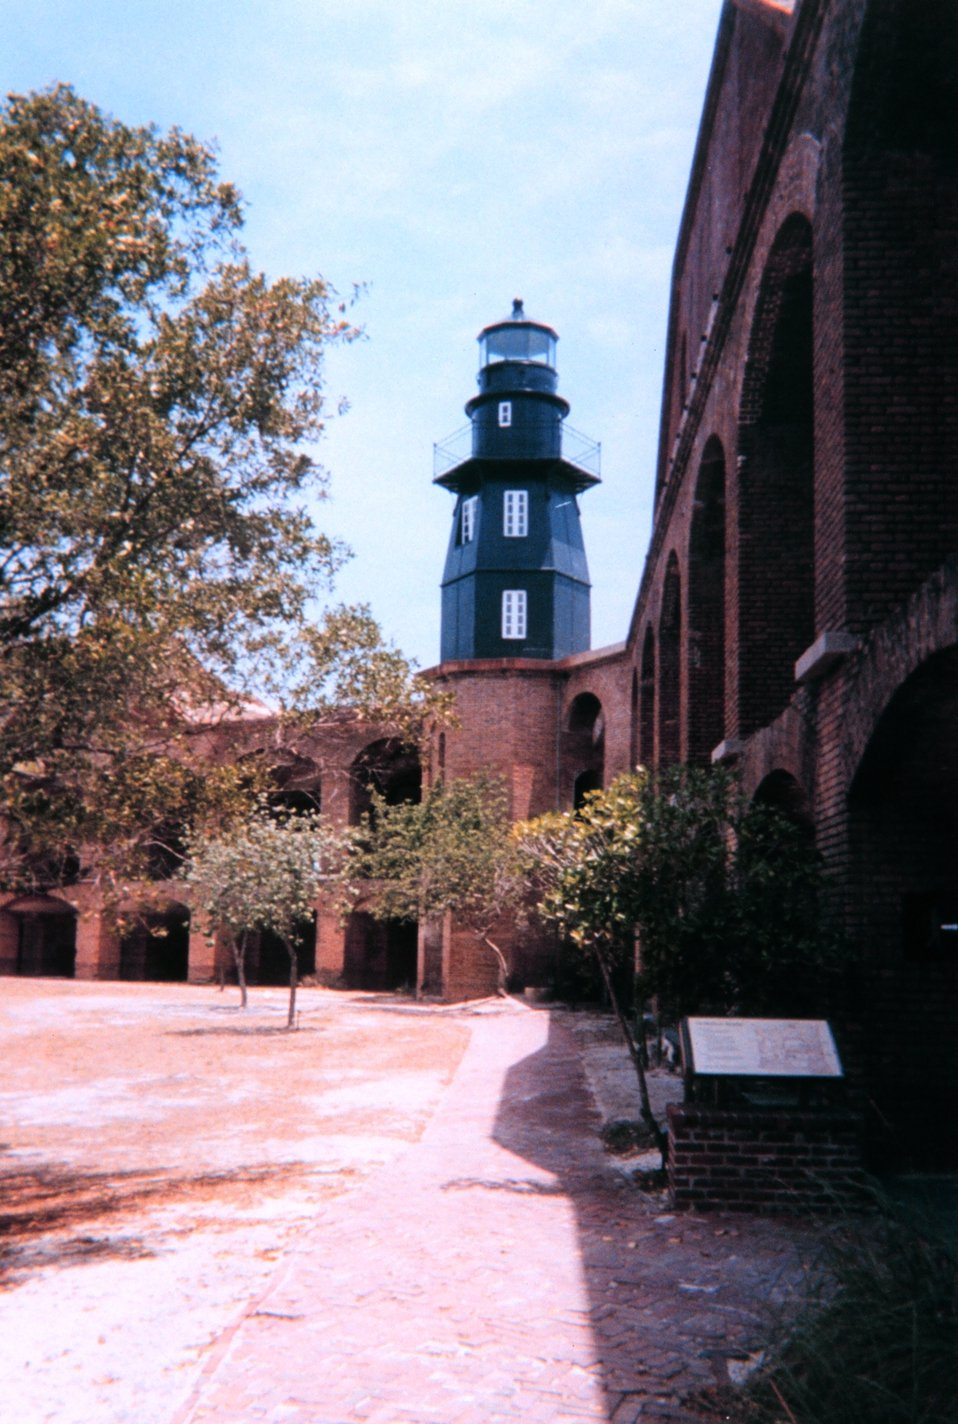 The lighthouse at Fort Jefferson, Dry Tortugas National Park, as seen from the interior of the fort.